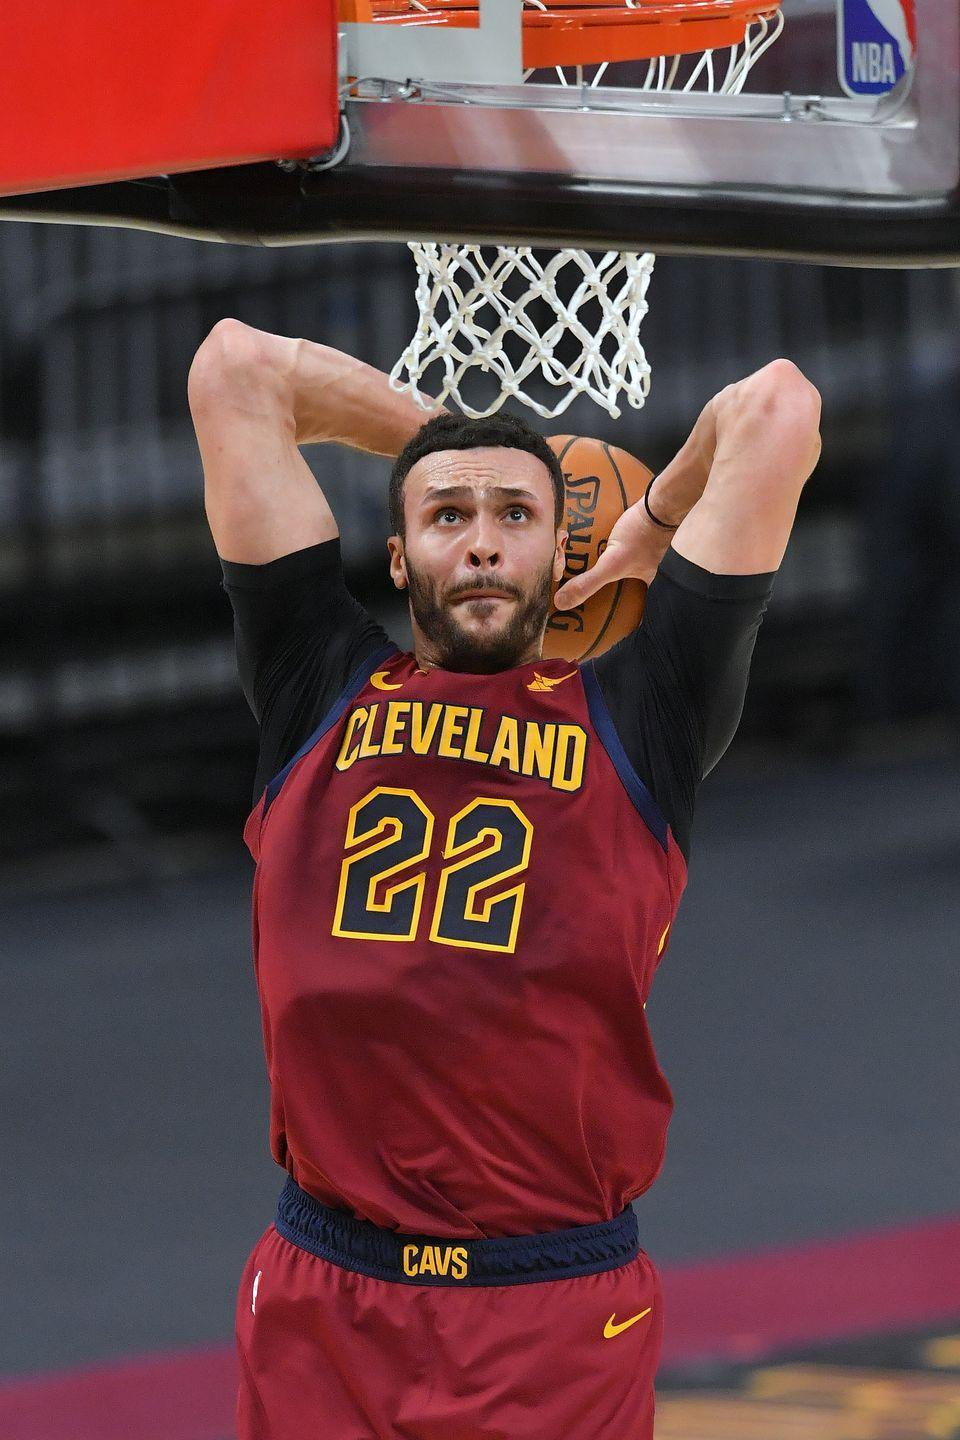 """<p>When <a href=""""https://www.nba.com/player/1626204/larry_nance%20jr"""" rel=""""nofollow noopener"""" target=""""_blank"""" data-ylk=""""slk:Nance"""" class=""""link rapid-noclick-resp"""">Nance</a> was diagnosed with Crohn's at age 16, he wanted to find a pro athlete who also had the disease and prevailed in spite of it. When he discovered that David Garrard was killing it as a quarterback for the Jacksonville Jaguars, """"it just spurred me on,"""" the Cleveland Cavalier told <em>GQ</em> in <a href=""""https://www.gq.com/story/real-life-diet-larry-nance-jr"""" rel=""""nofollow noopener"""" target=""""_blank"""" data-ylk=""""slk:2017"""" class=""""link rapid-noclick-resp"""">2017</a>.</p><p>Nance went on to become known for his high-flying dunks as a Los Angeles Laker before he was traded to the Cavaliers. (Part of his secret? He plays on an empty stomach and follows a strict diet to keep his energy up.) Although he was sidelined for the end ofthe 2021 NBA season, it wasn't because of his Crohn's. Nance suffered a fractured thumb.<br><br></p>"""